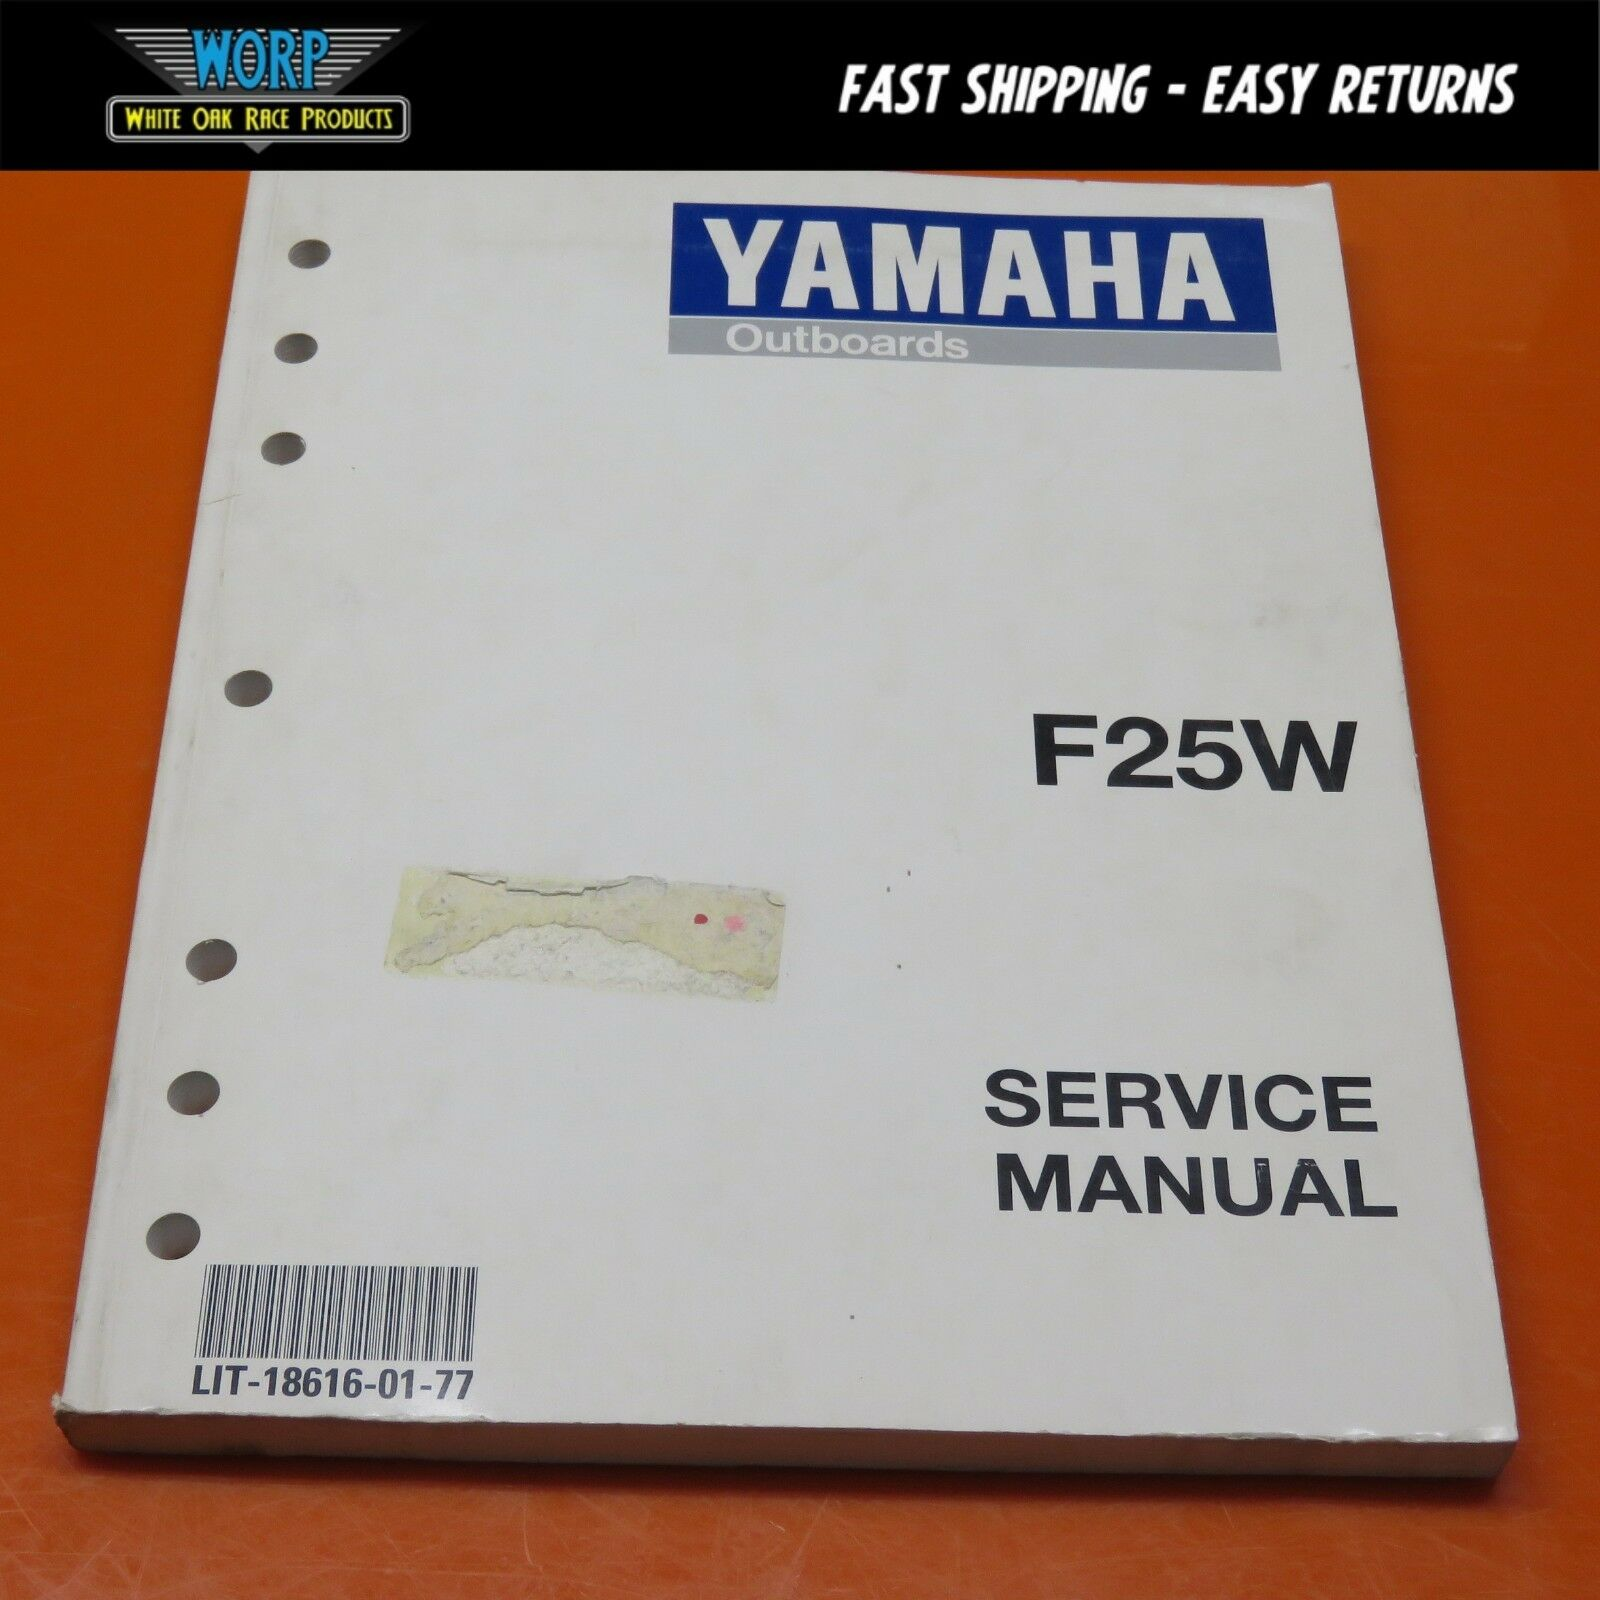 OEM Yamaha F25 W F25W Outboard Boat Engine Factory Service Manual Shop Book